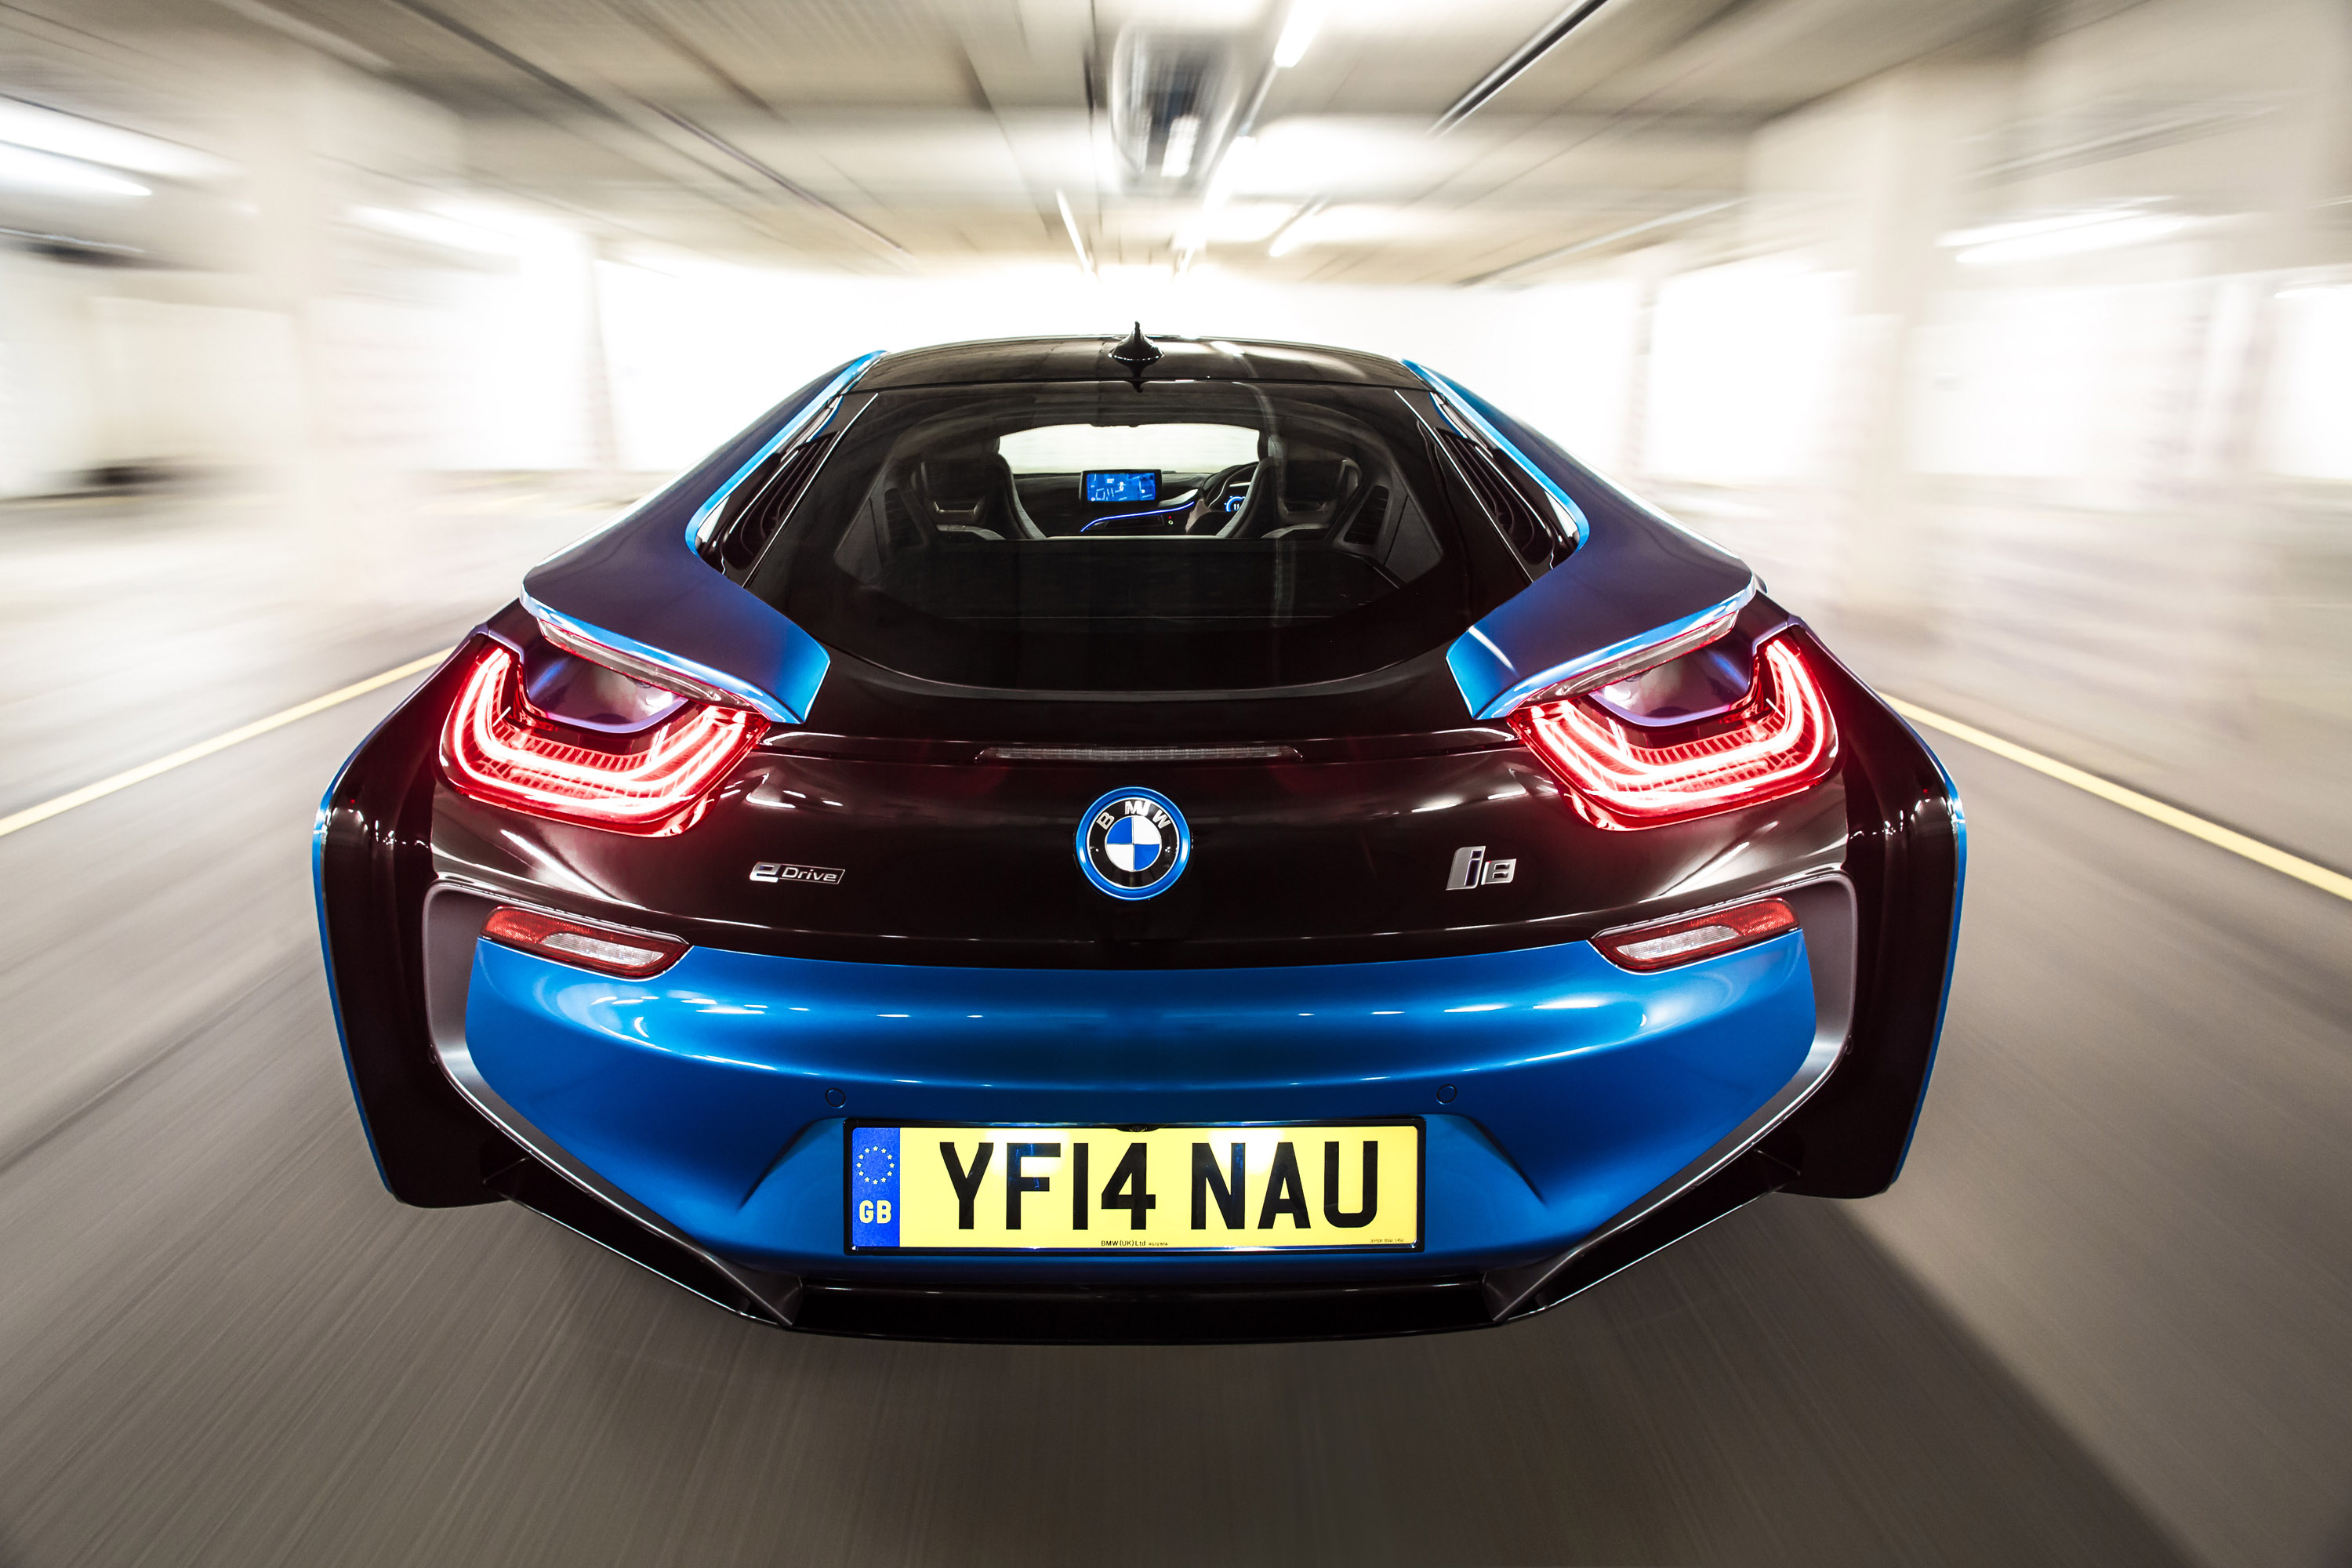 Bmw I8 Concours D Elegance Edition To Be Auctioned At Pebble Beach